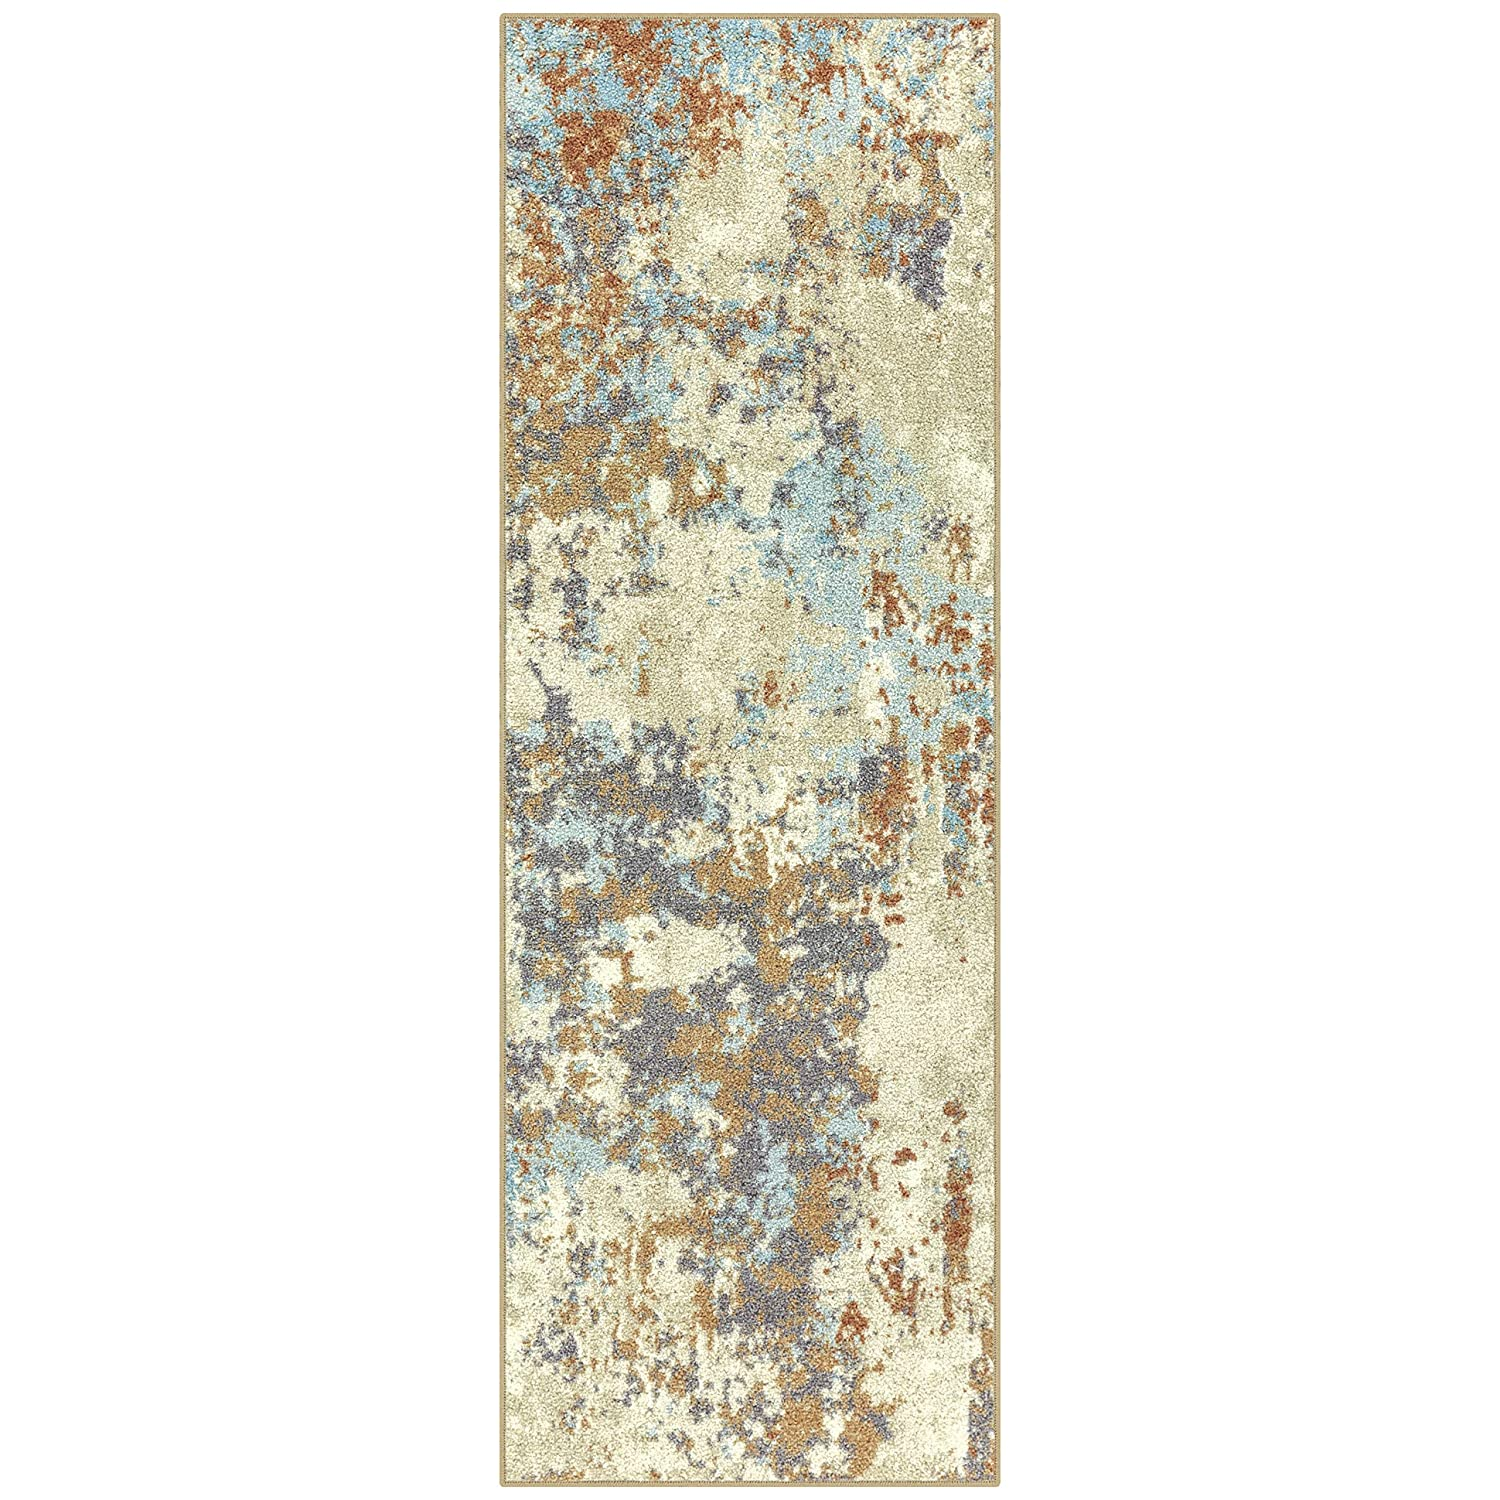 Maples Rugs Southwestern Stone 2 x 6 Distressed Style Non Skid Hallway Entry Rugs Runners [Made in USA] for for Kitchen and Entryway, Multi